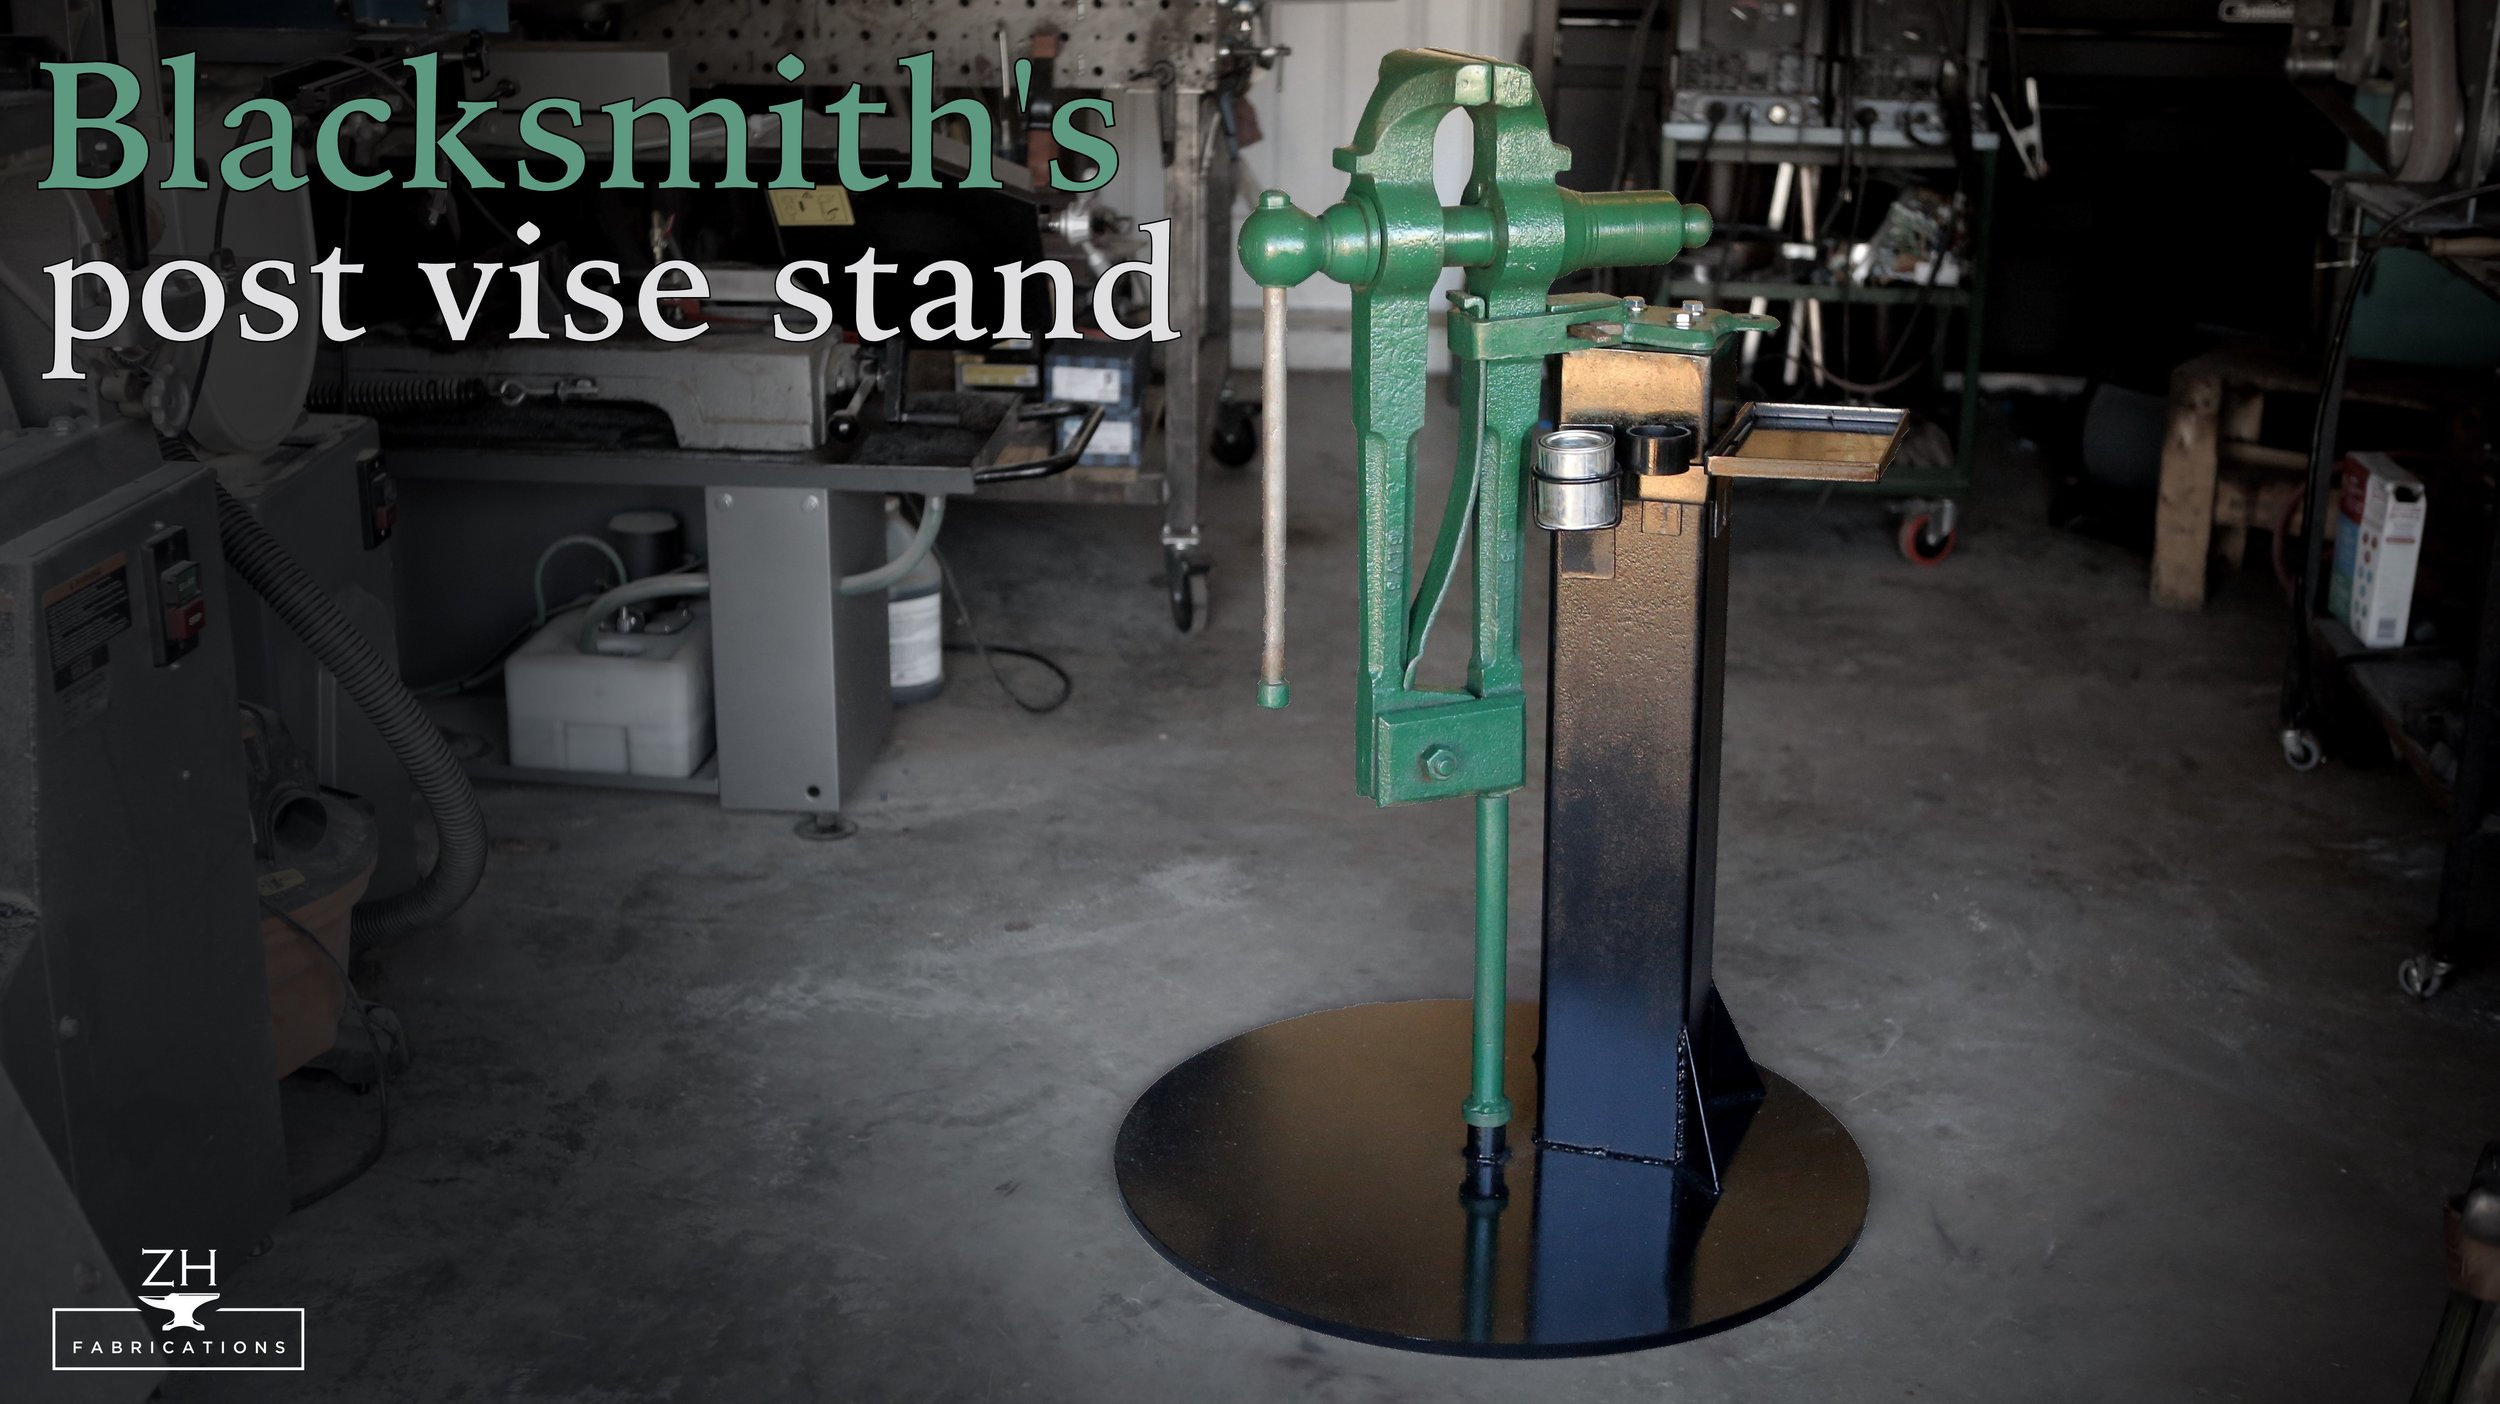 Blacksmith's post vise stand